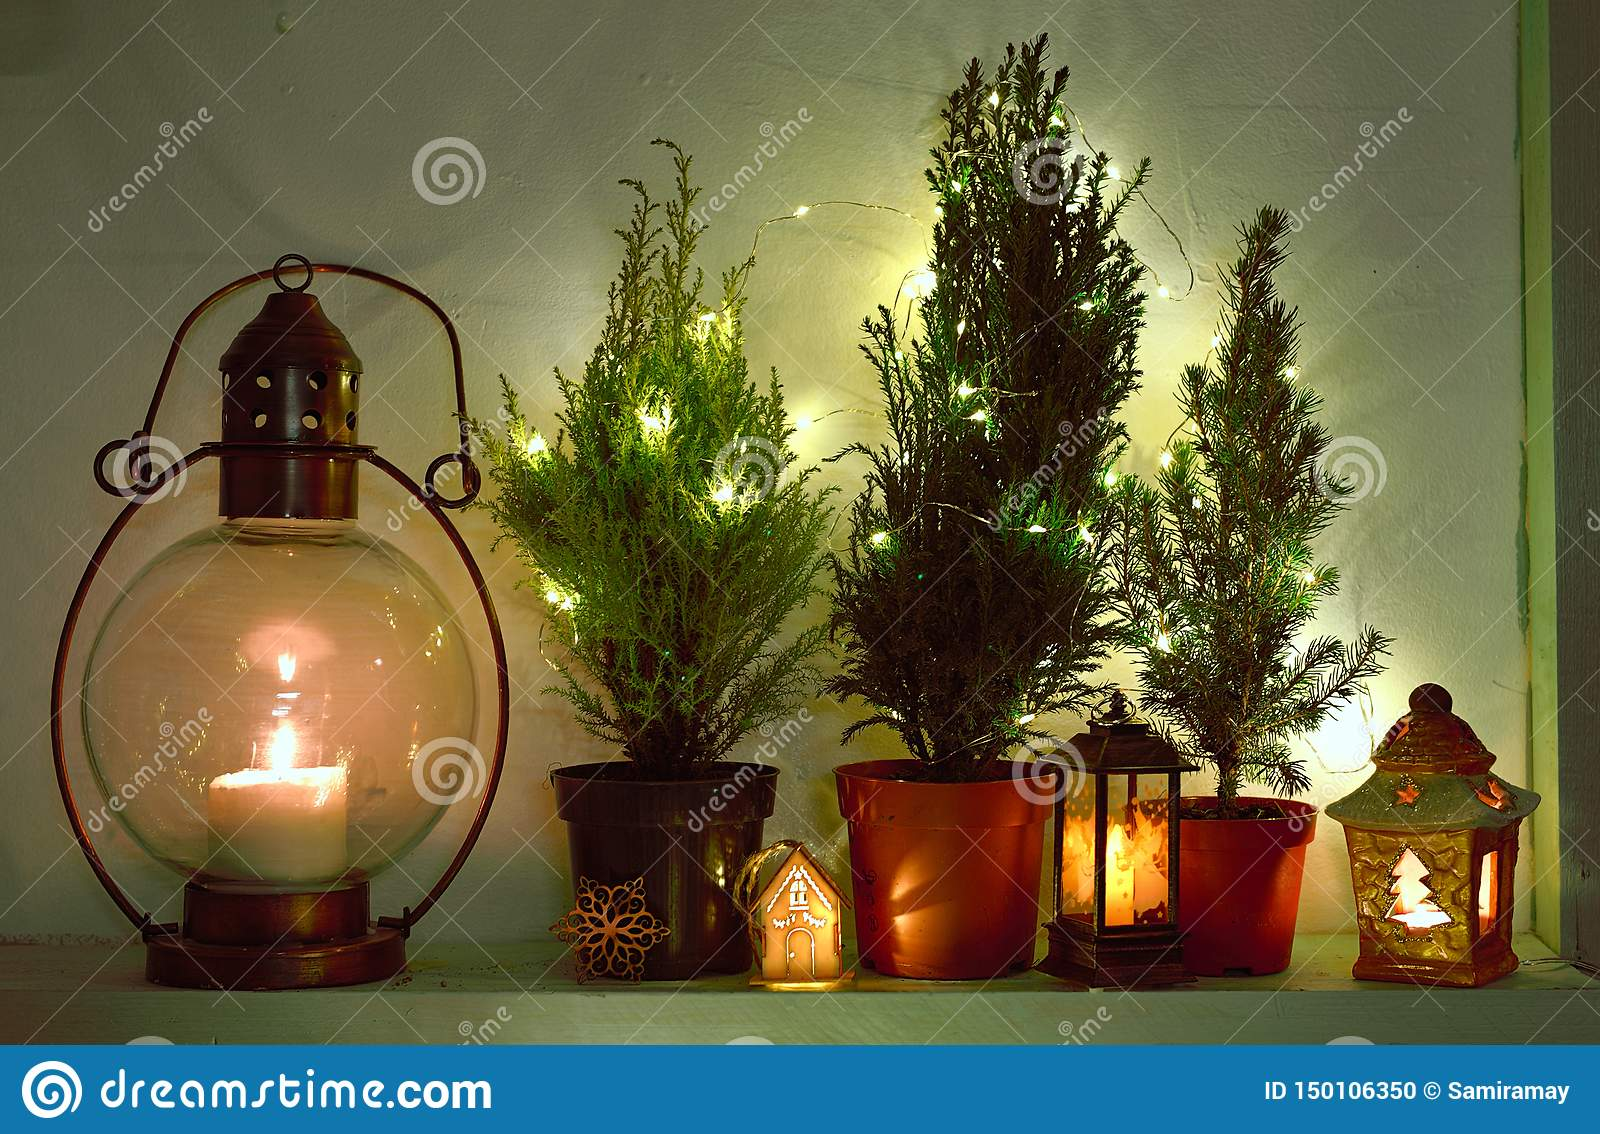 Still Life With Shining Lanterns And Natural Fir Trees Decorated With Lights Stock Photo Image Of Holiday Lantern 150106350